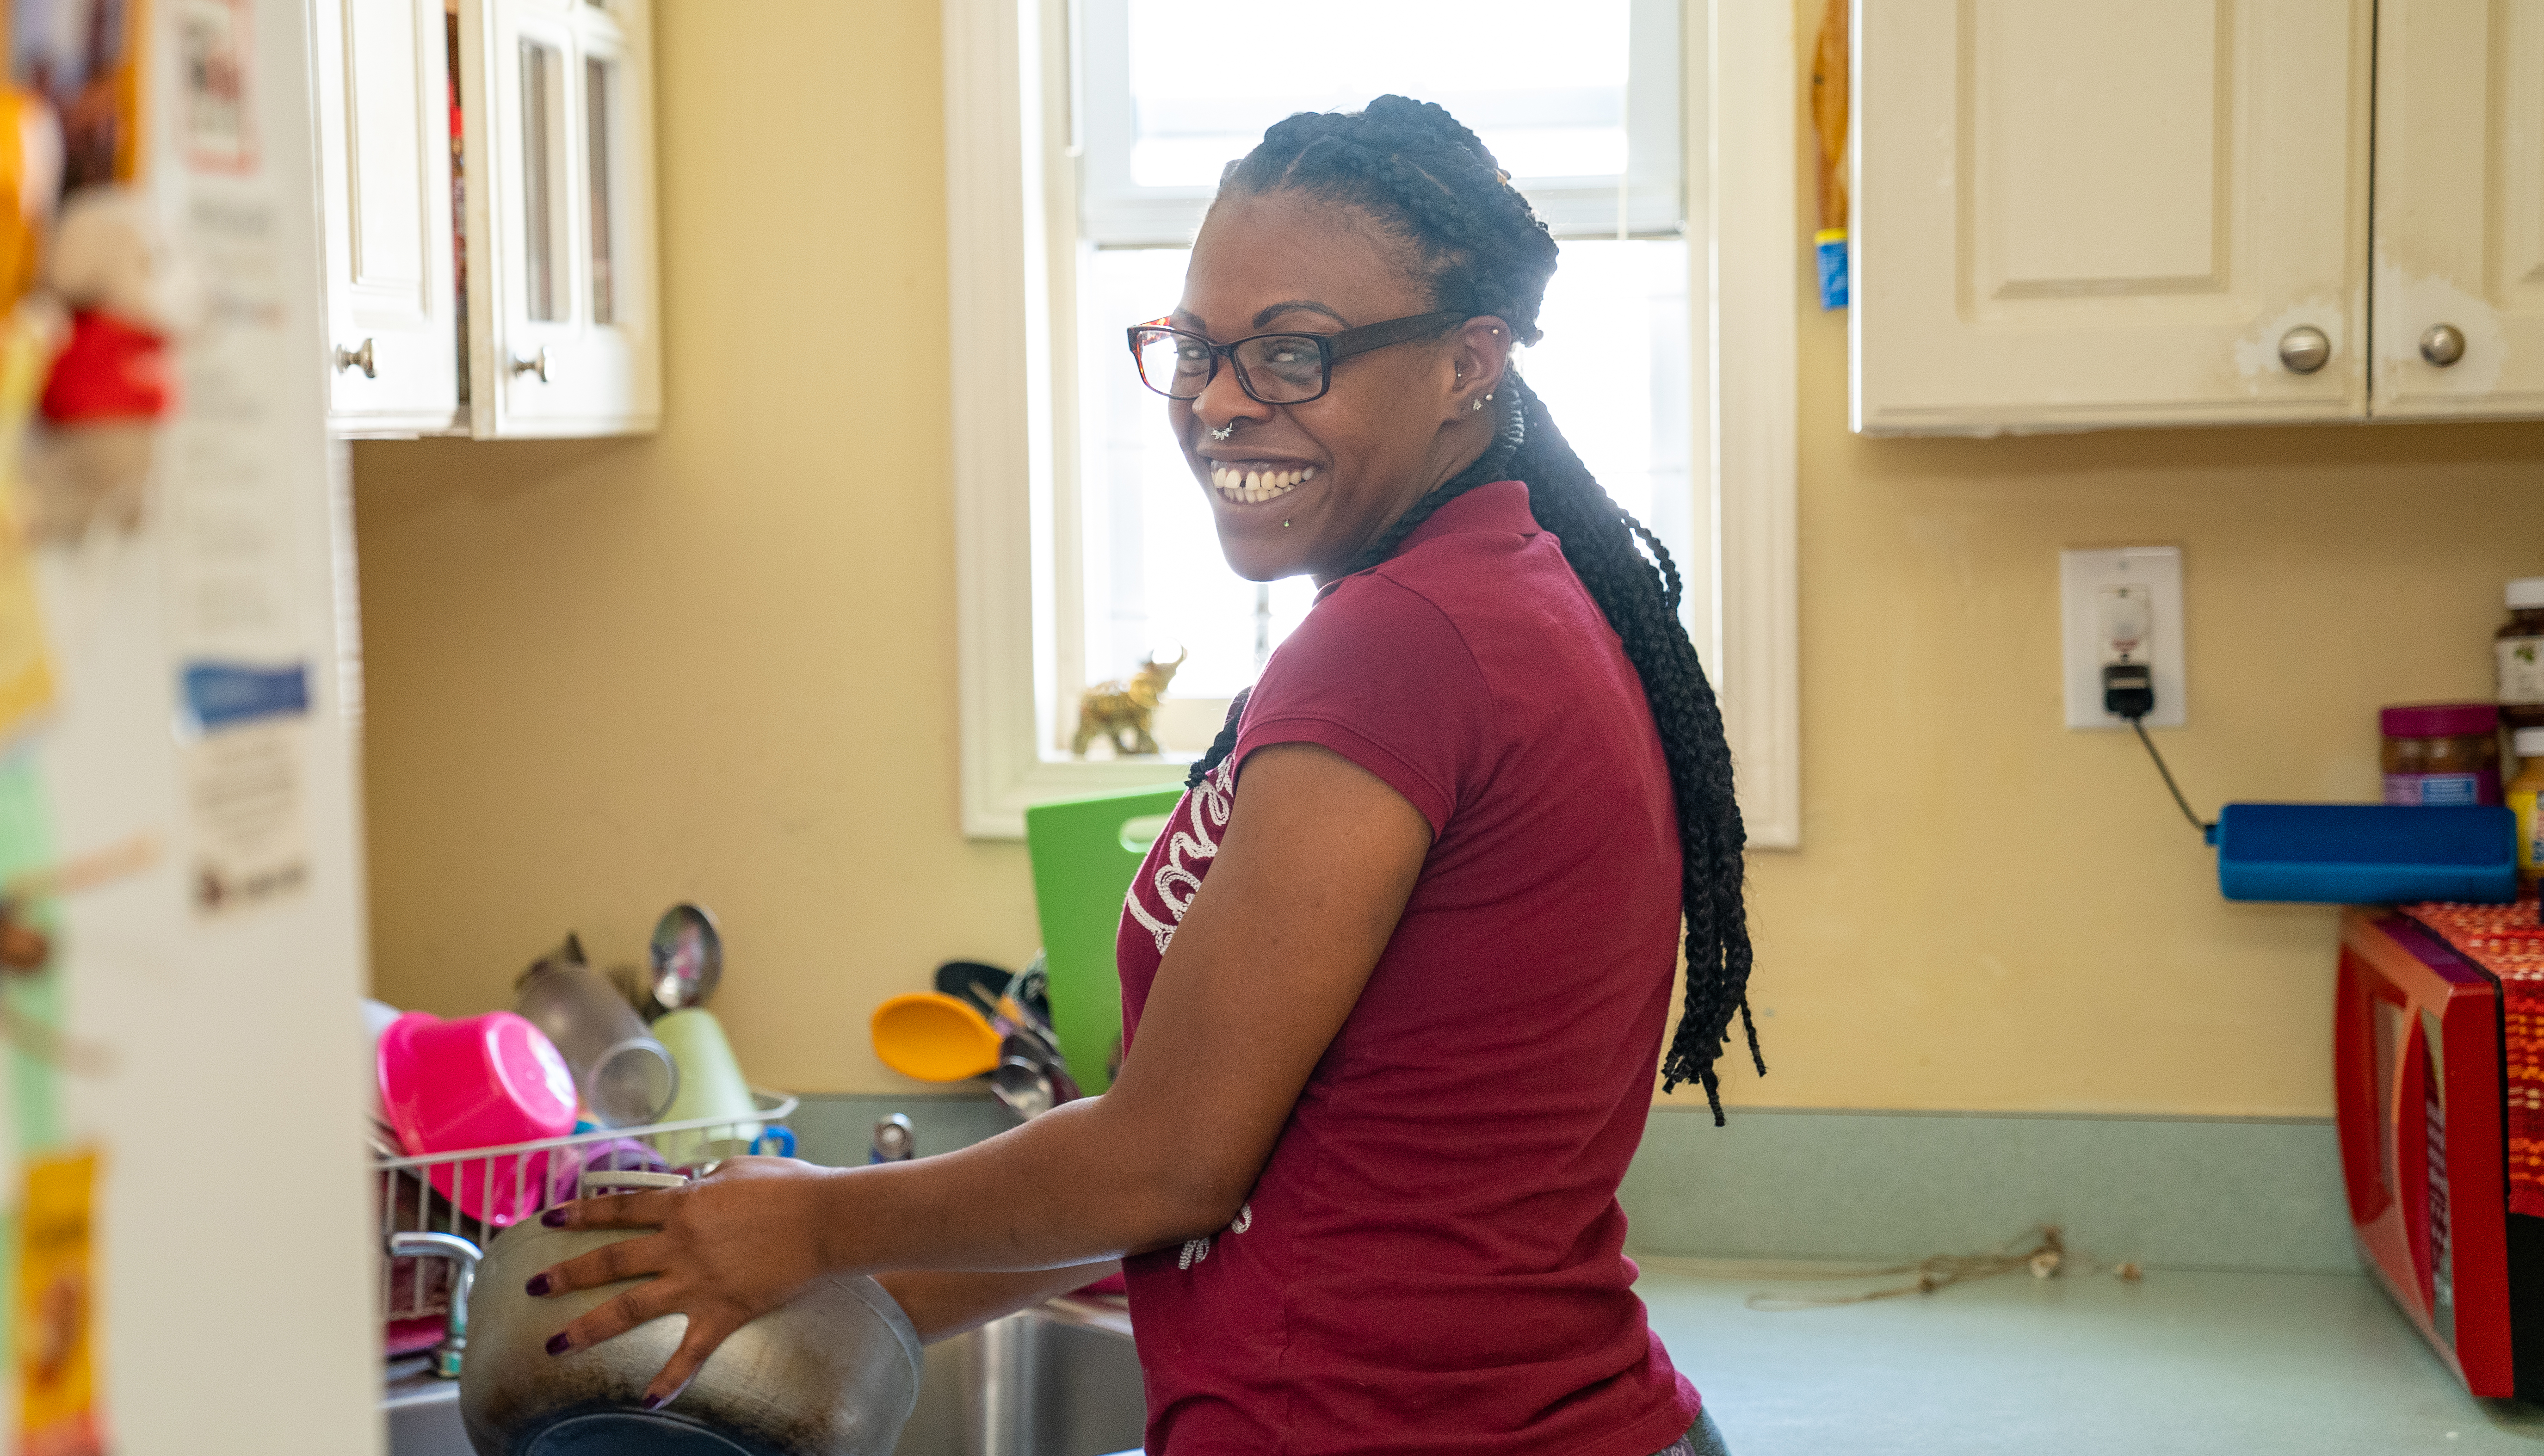 woman smiling while doing dishes